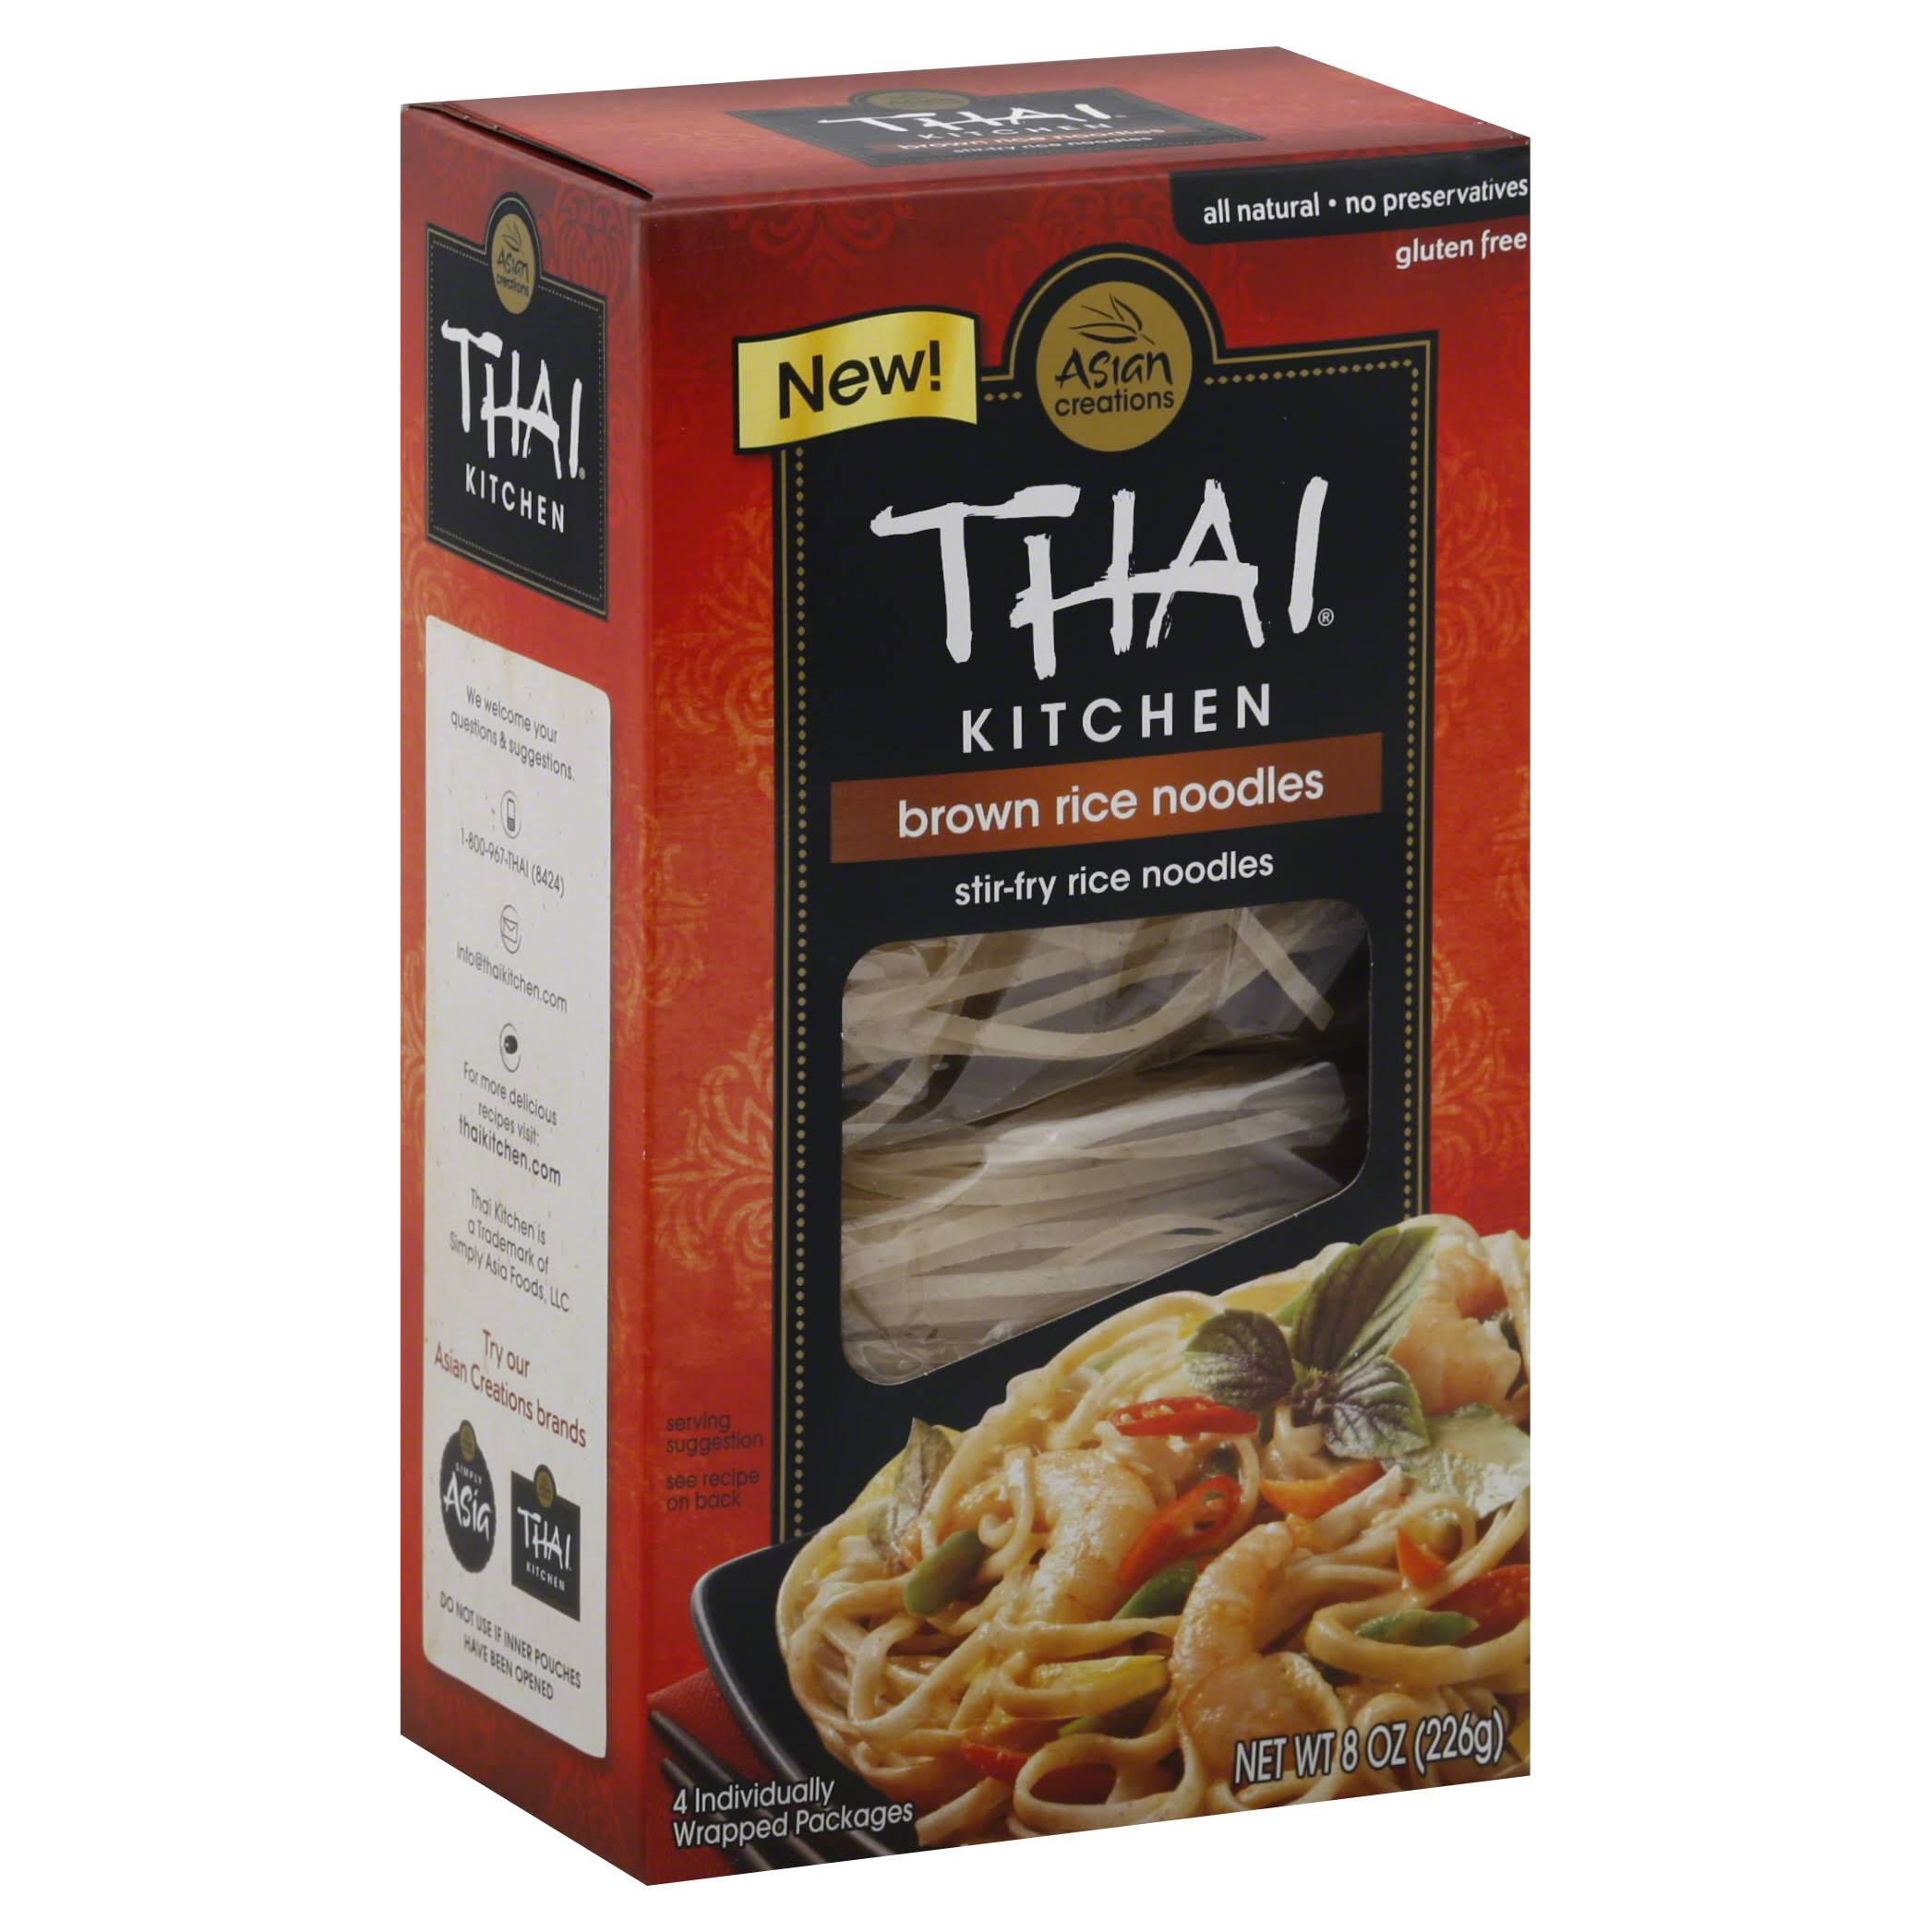 Thai Kitchen Brown Rice Noodles - 8oz